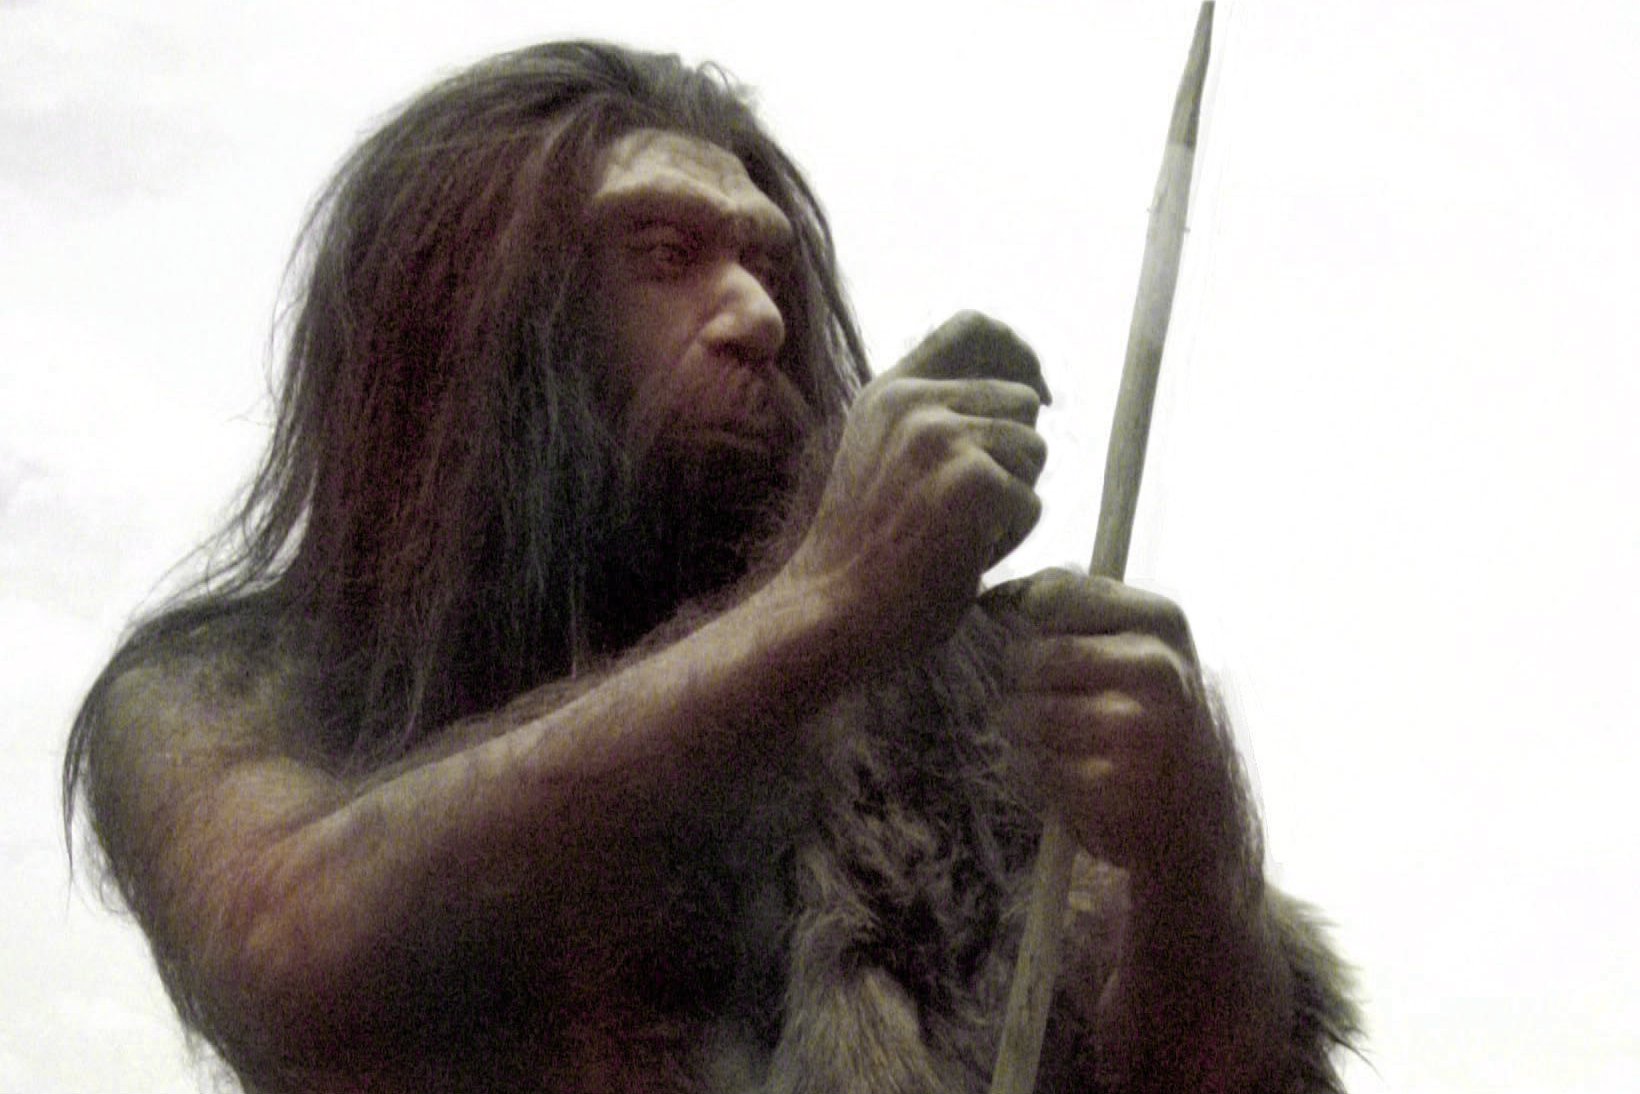 homo neanderthals A study guide to our distant cousins, the neanderthals, including an overview, important facts, archaeological sites, suggestions for further reading.